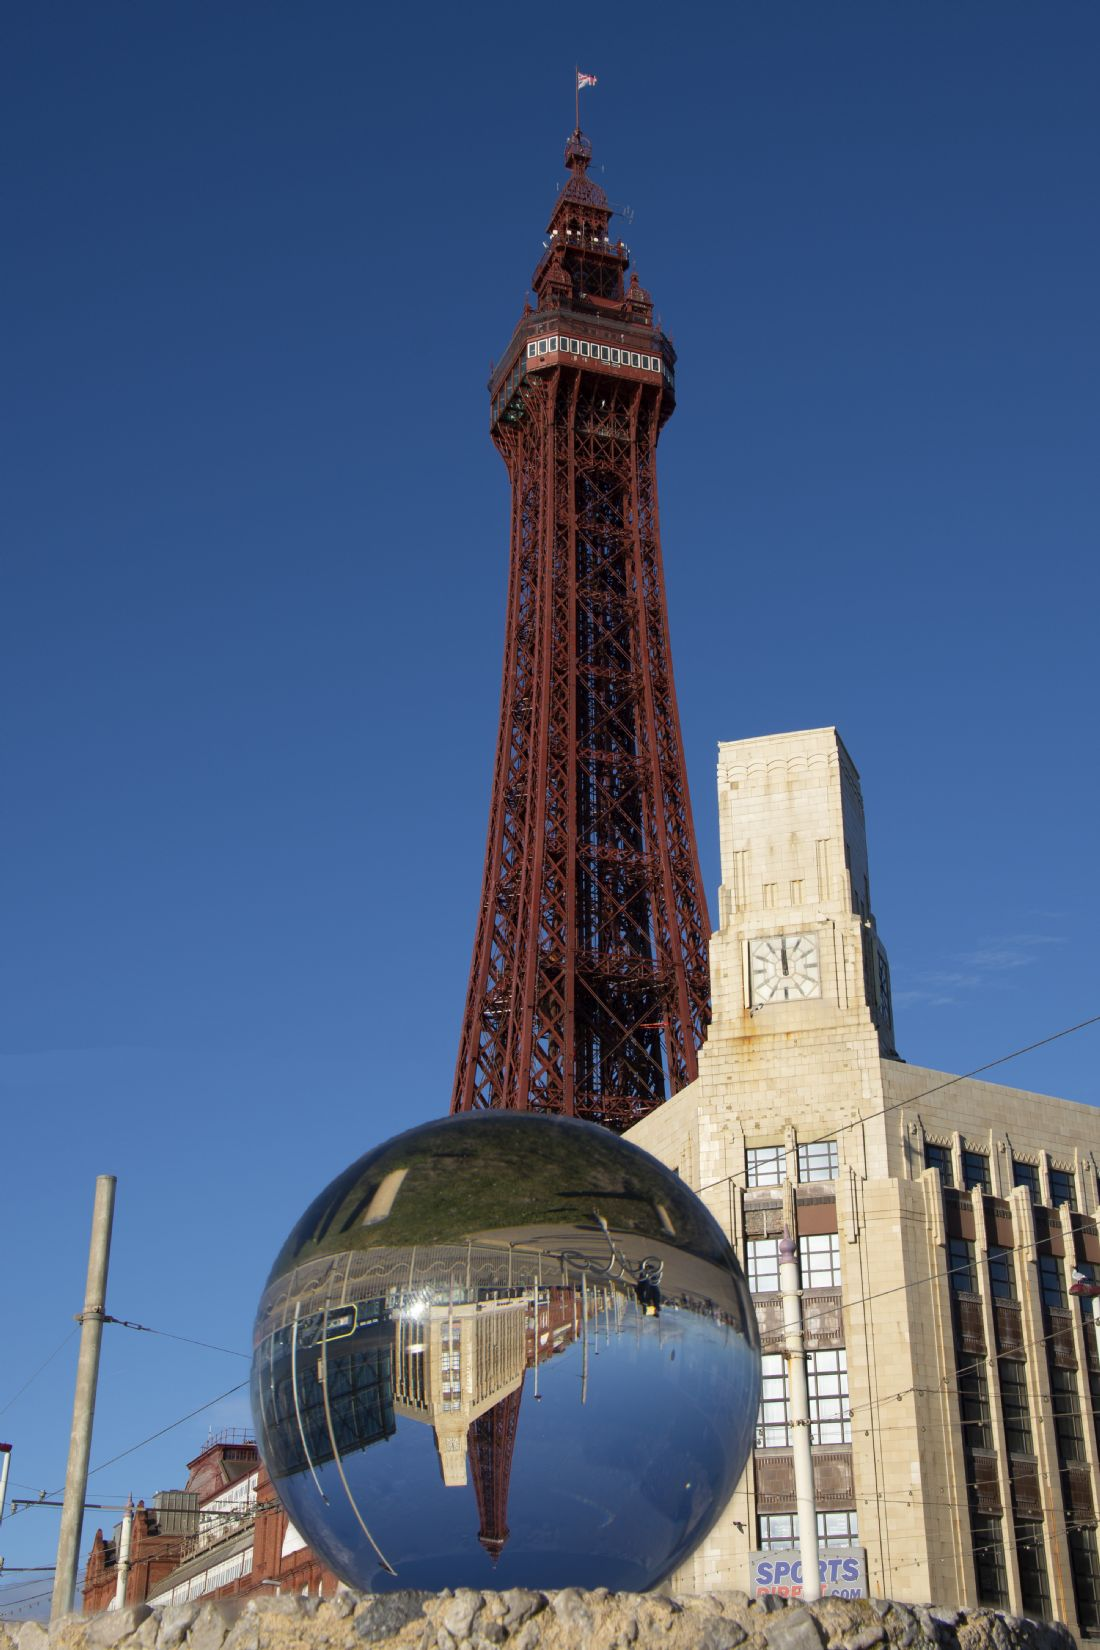 Steve Stamford | Blackpool tower lens ball